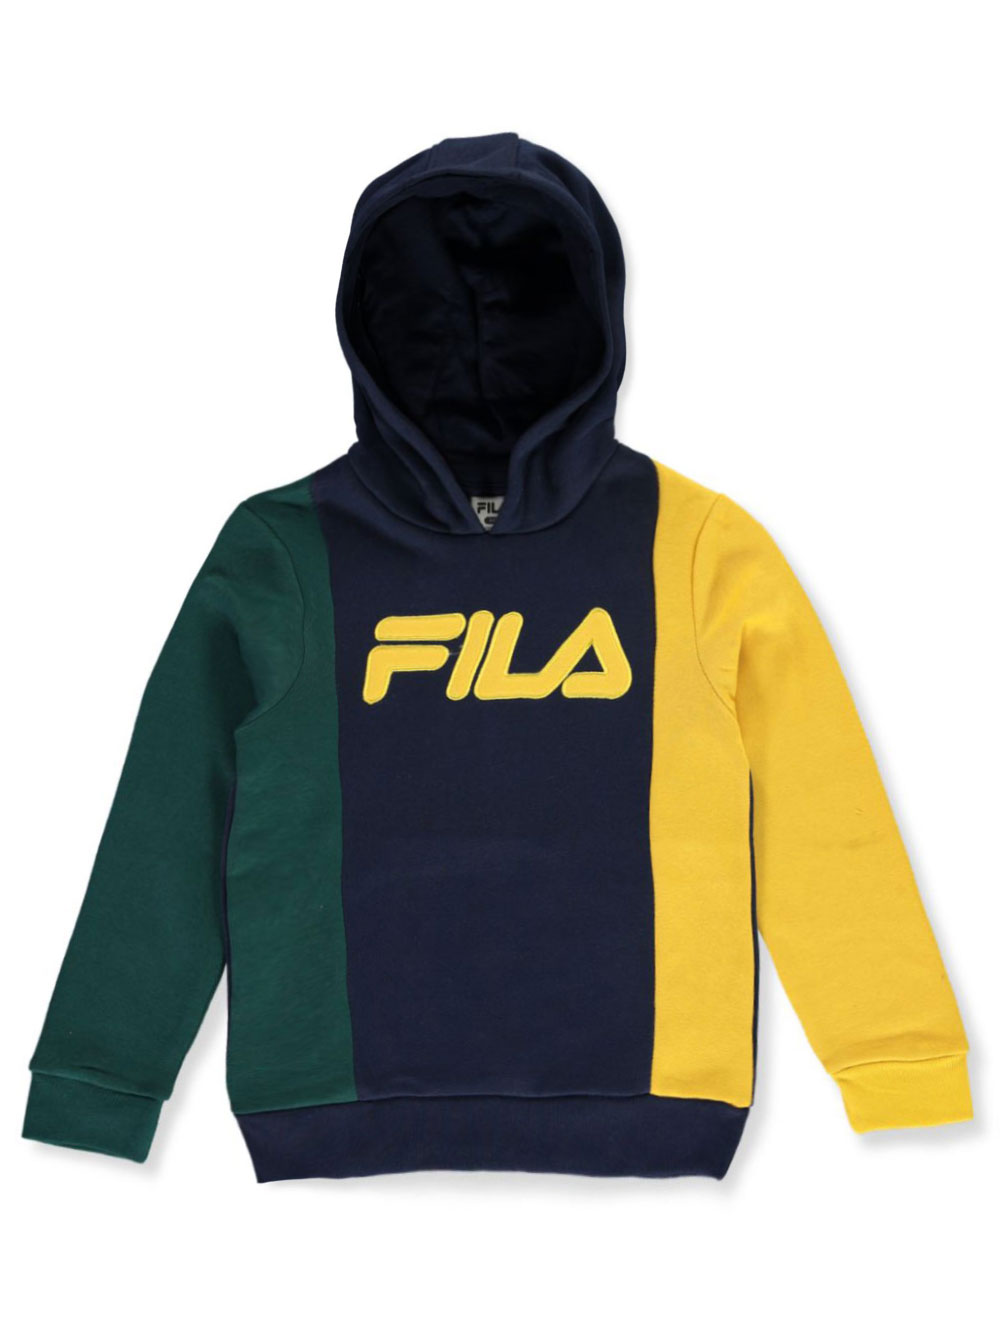 Vertical Tricolor Pullover Fleece Hoodie by Fila in citrus and navy